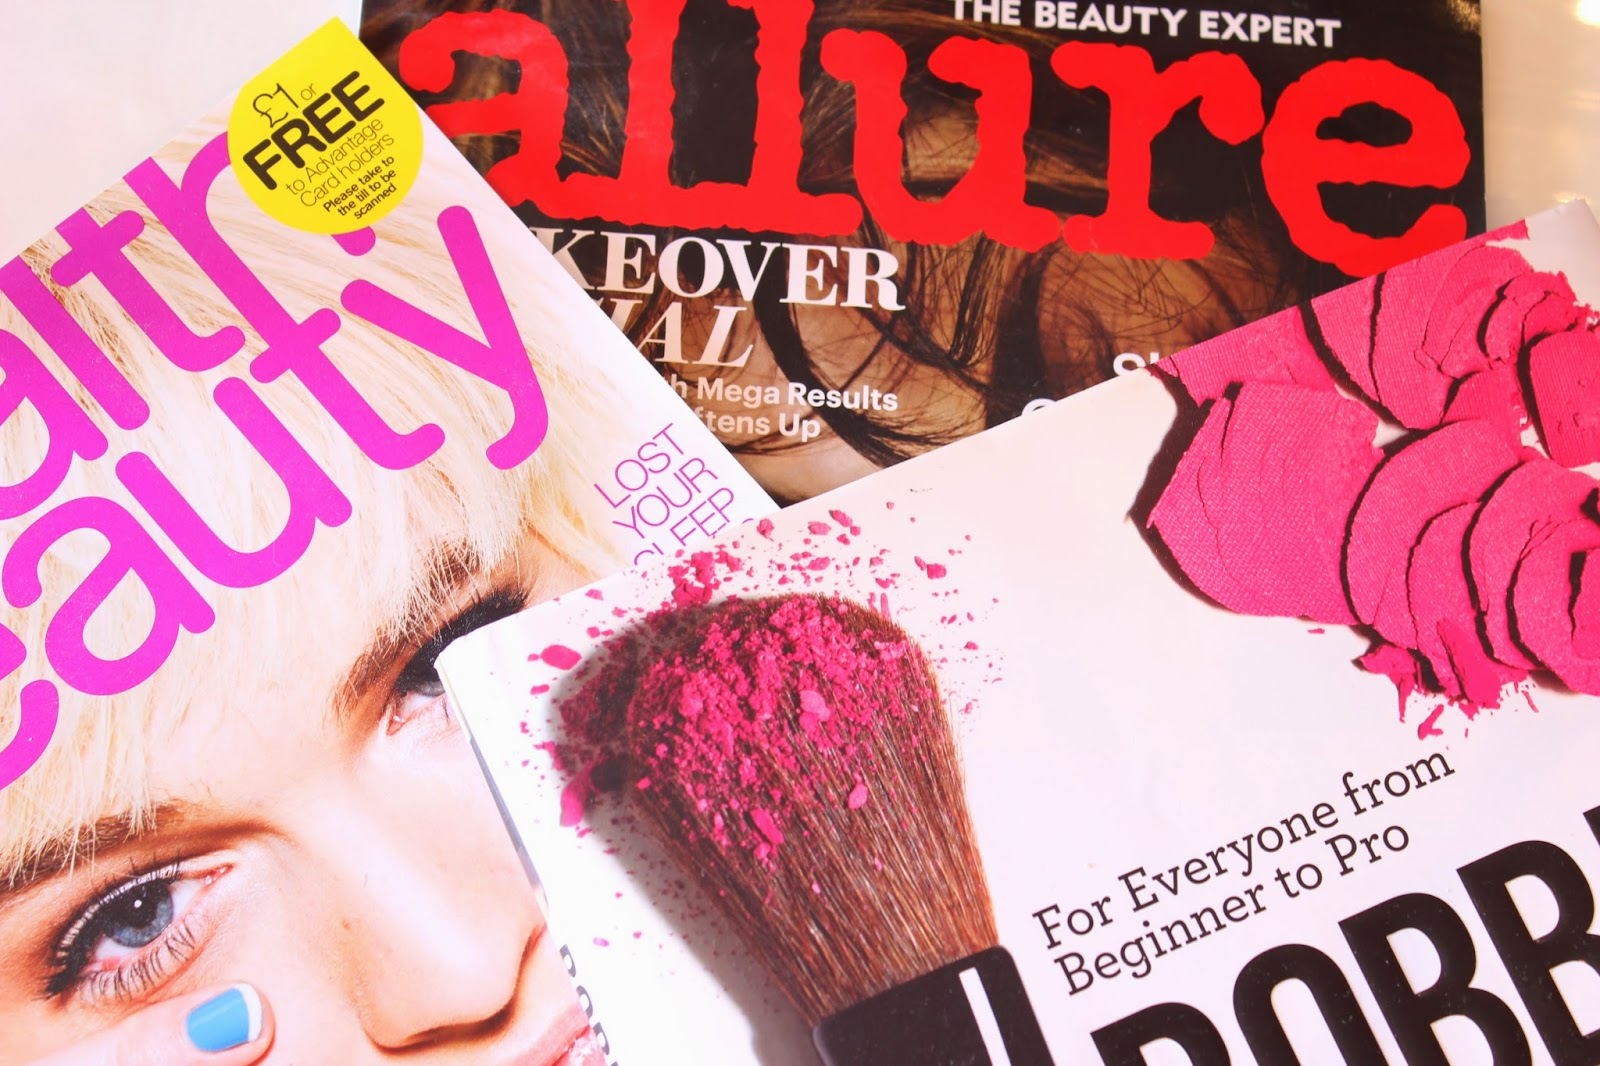 Steal, Spend & Save: Beauty Reads